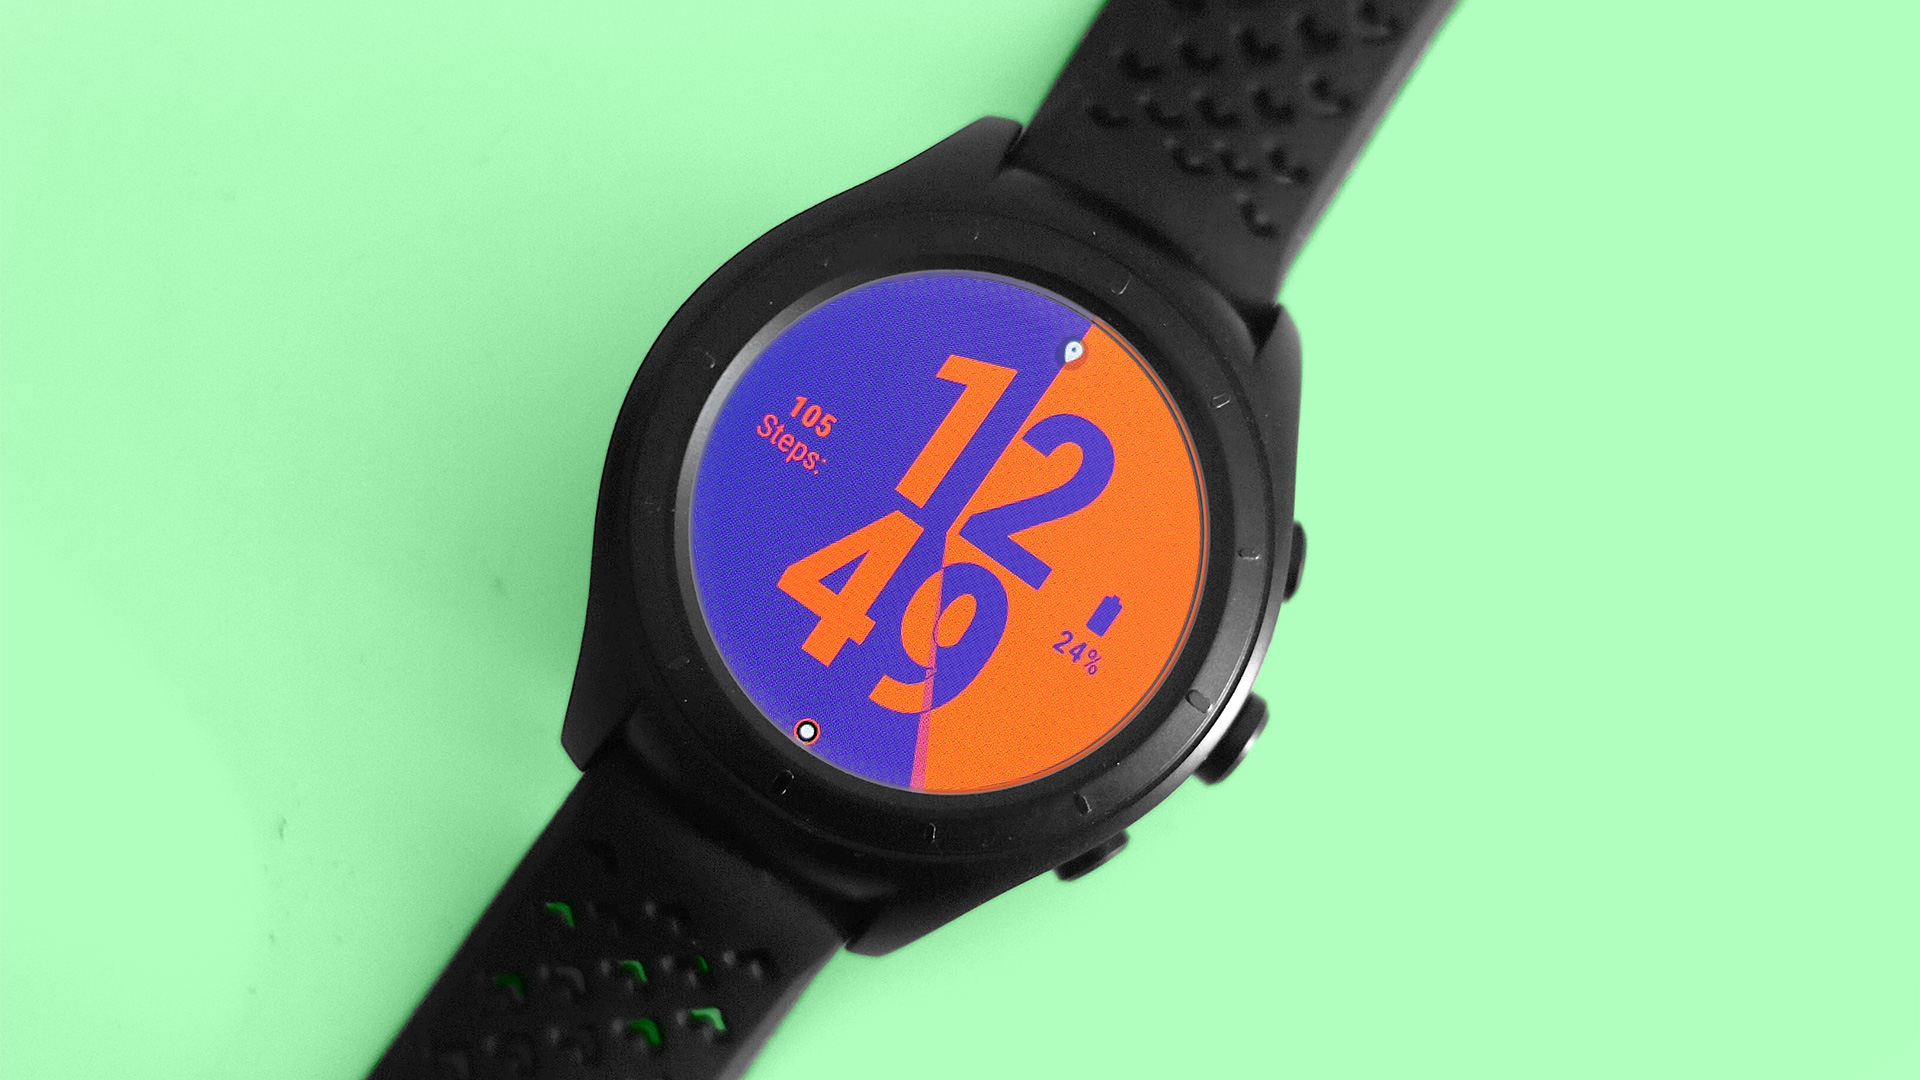 Best Wear OS watch faces 2019: great looks for your smartwatch